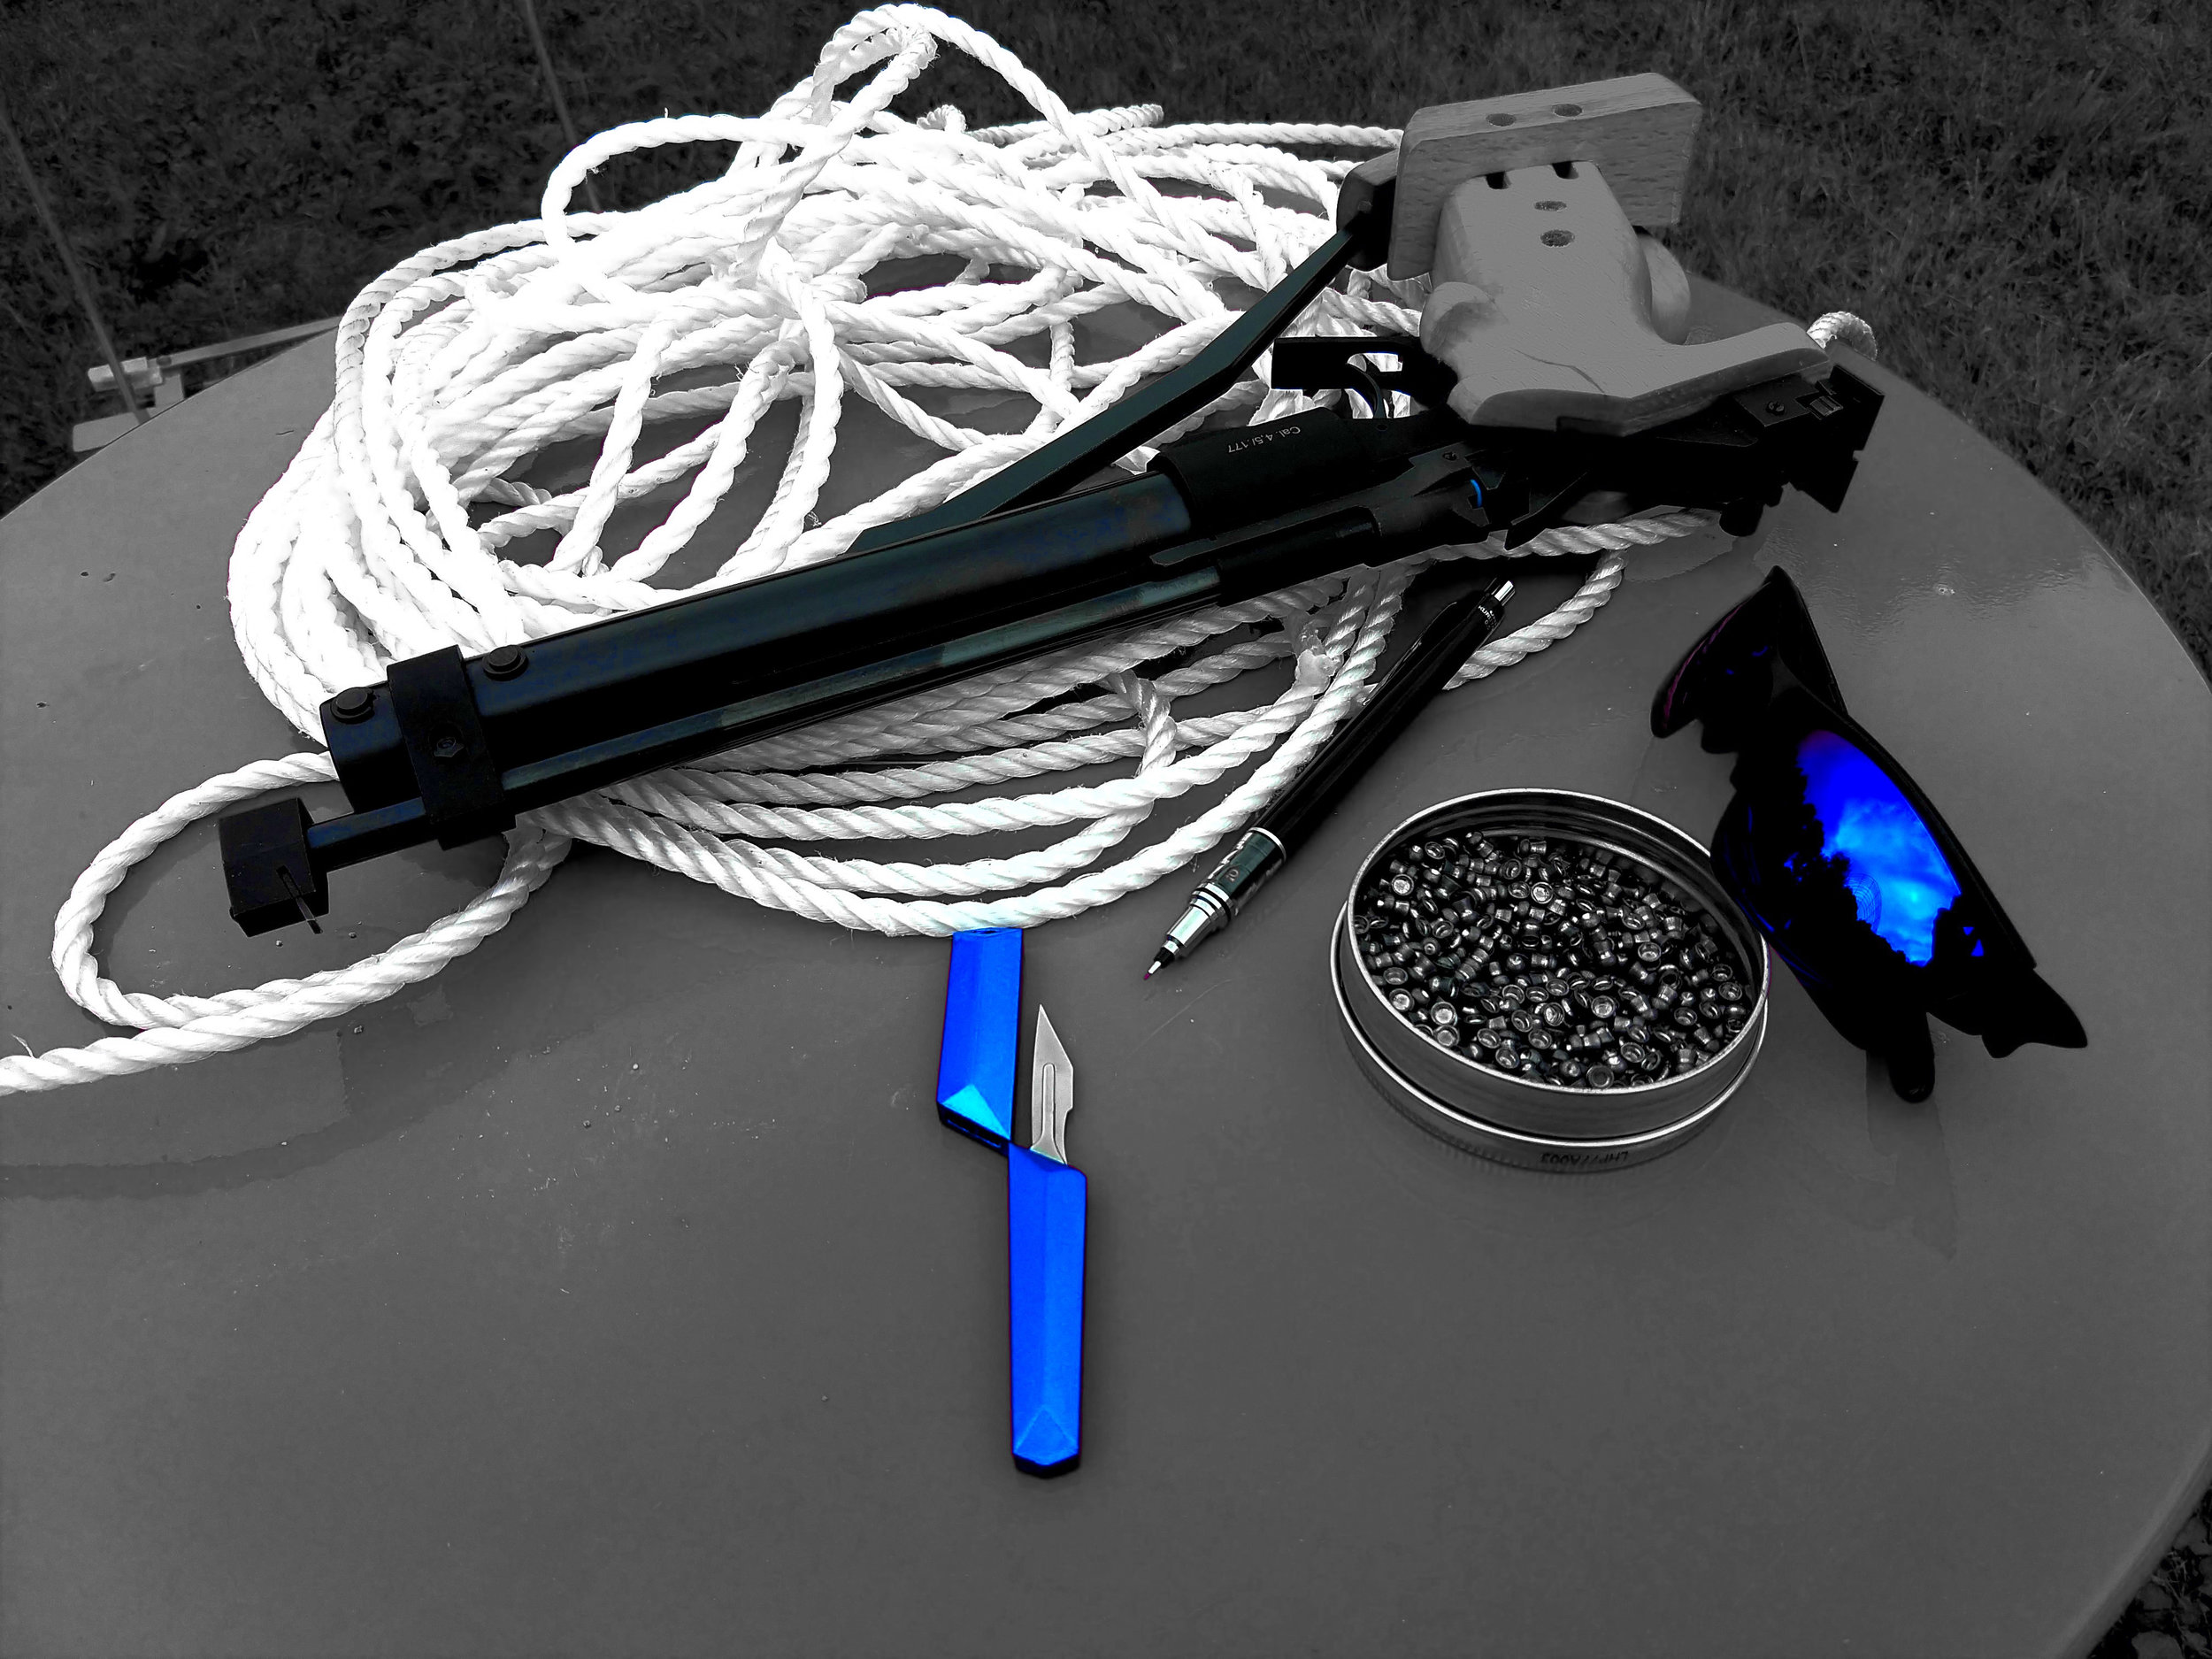 The repaired IZH-46M with one of the little blue gaskets just visible as a flash of blue at the breech. Also seen with one of our scalpeldashi in sapphire blue, a Kuru Toga Advance by Uni, and a tin if .177 Crossman Premier hollow point pellets.